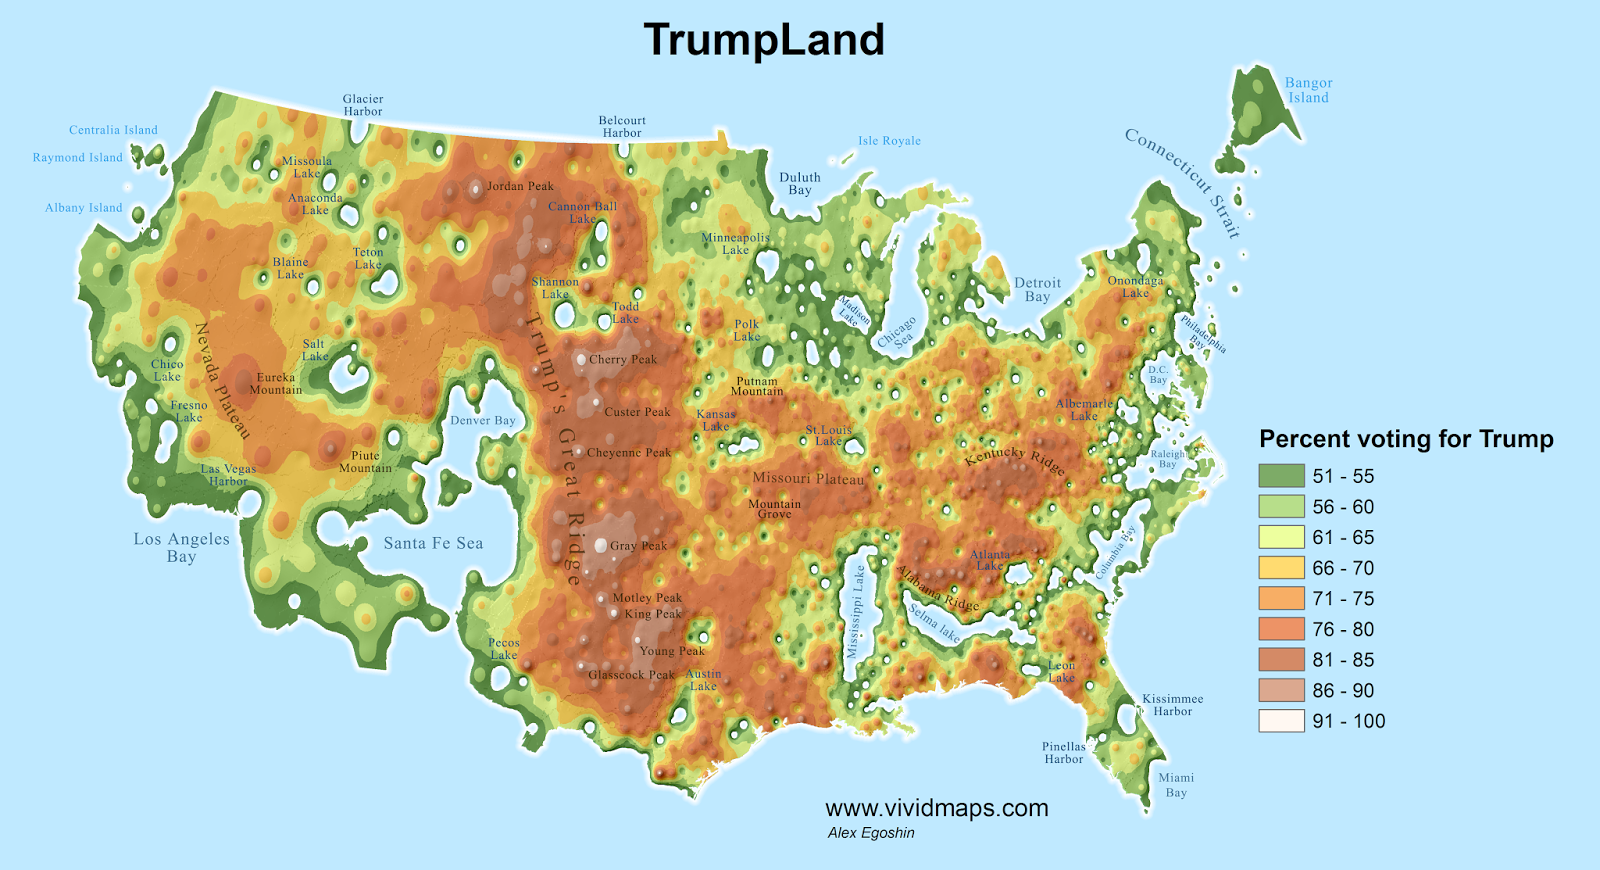 TrumpLand and Clinton Archipelago